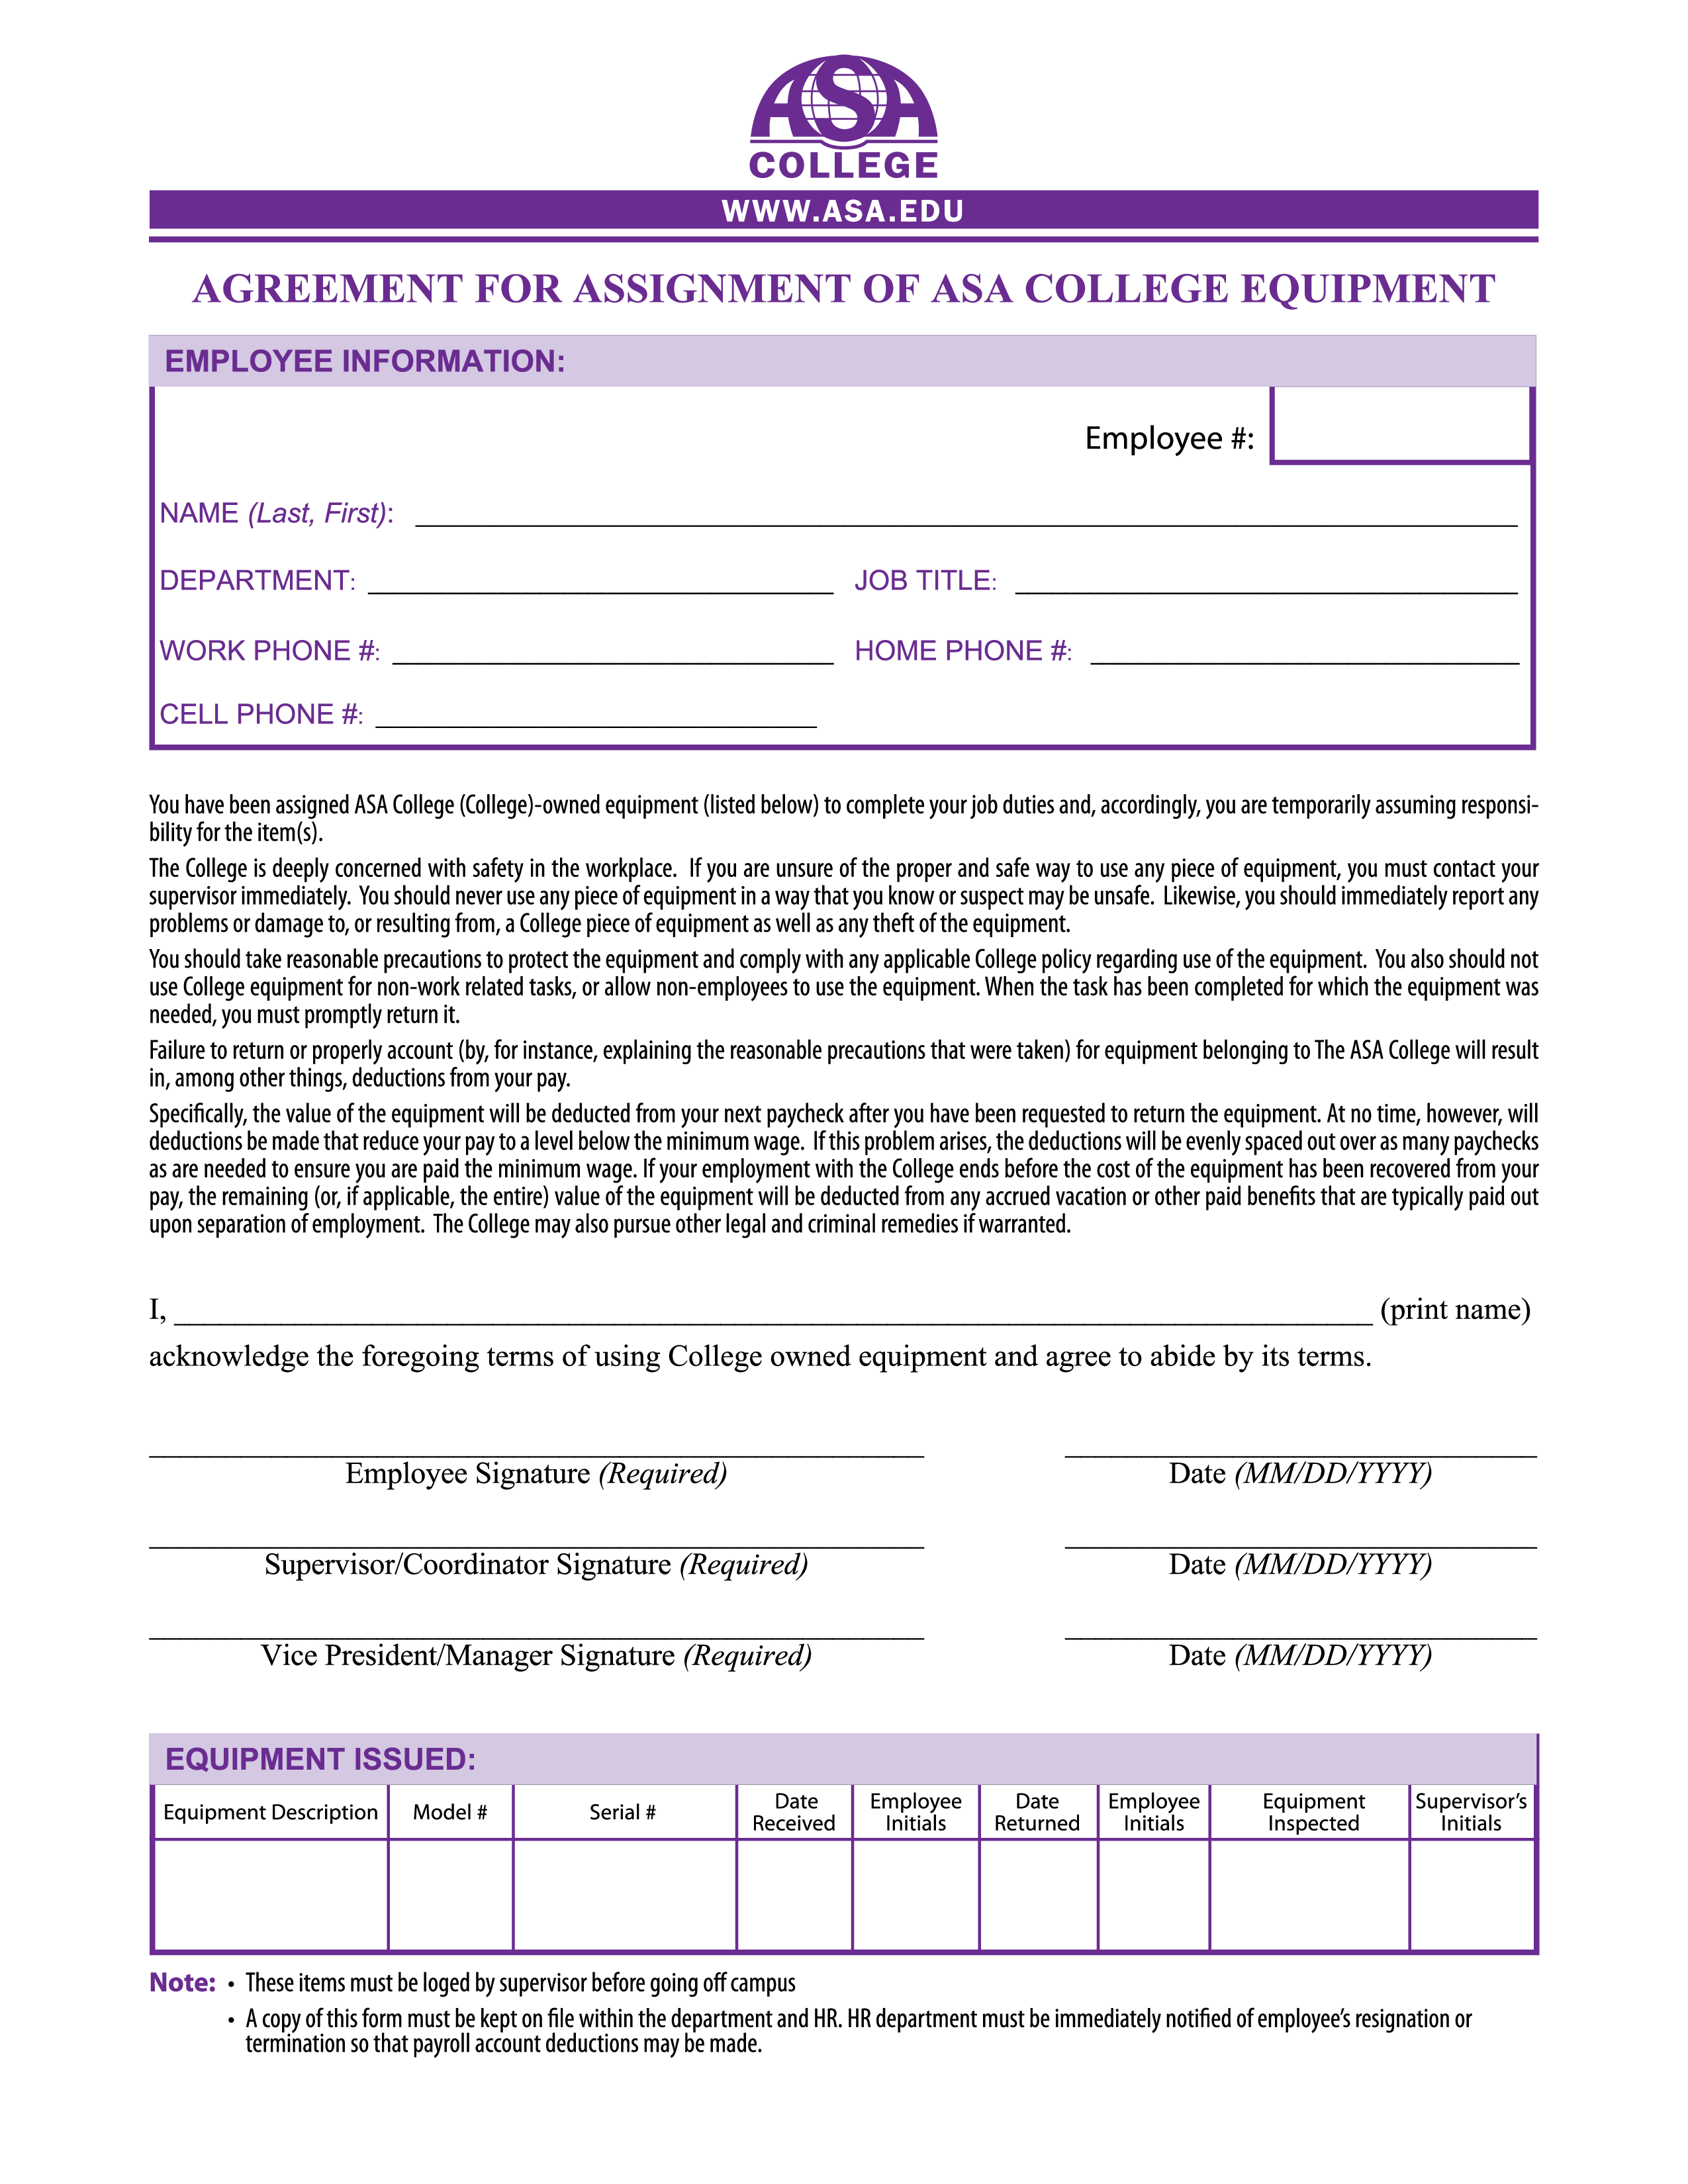 Free Equipment Assignment Agreement | Templates at ...